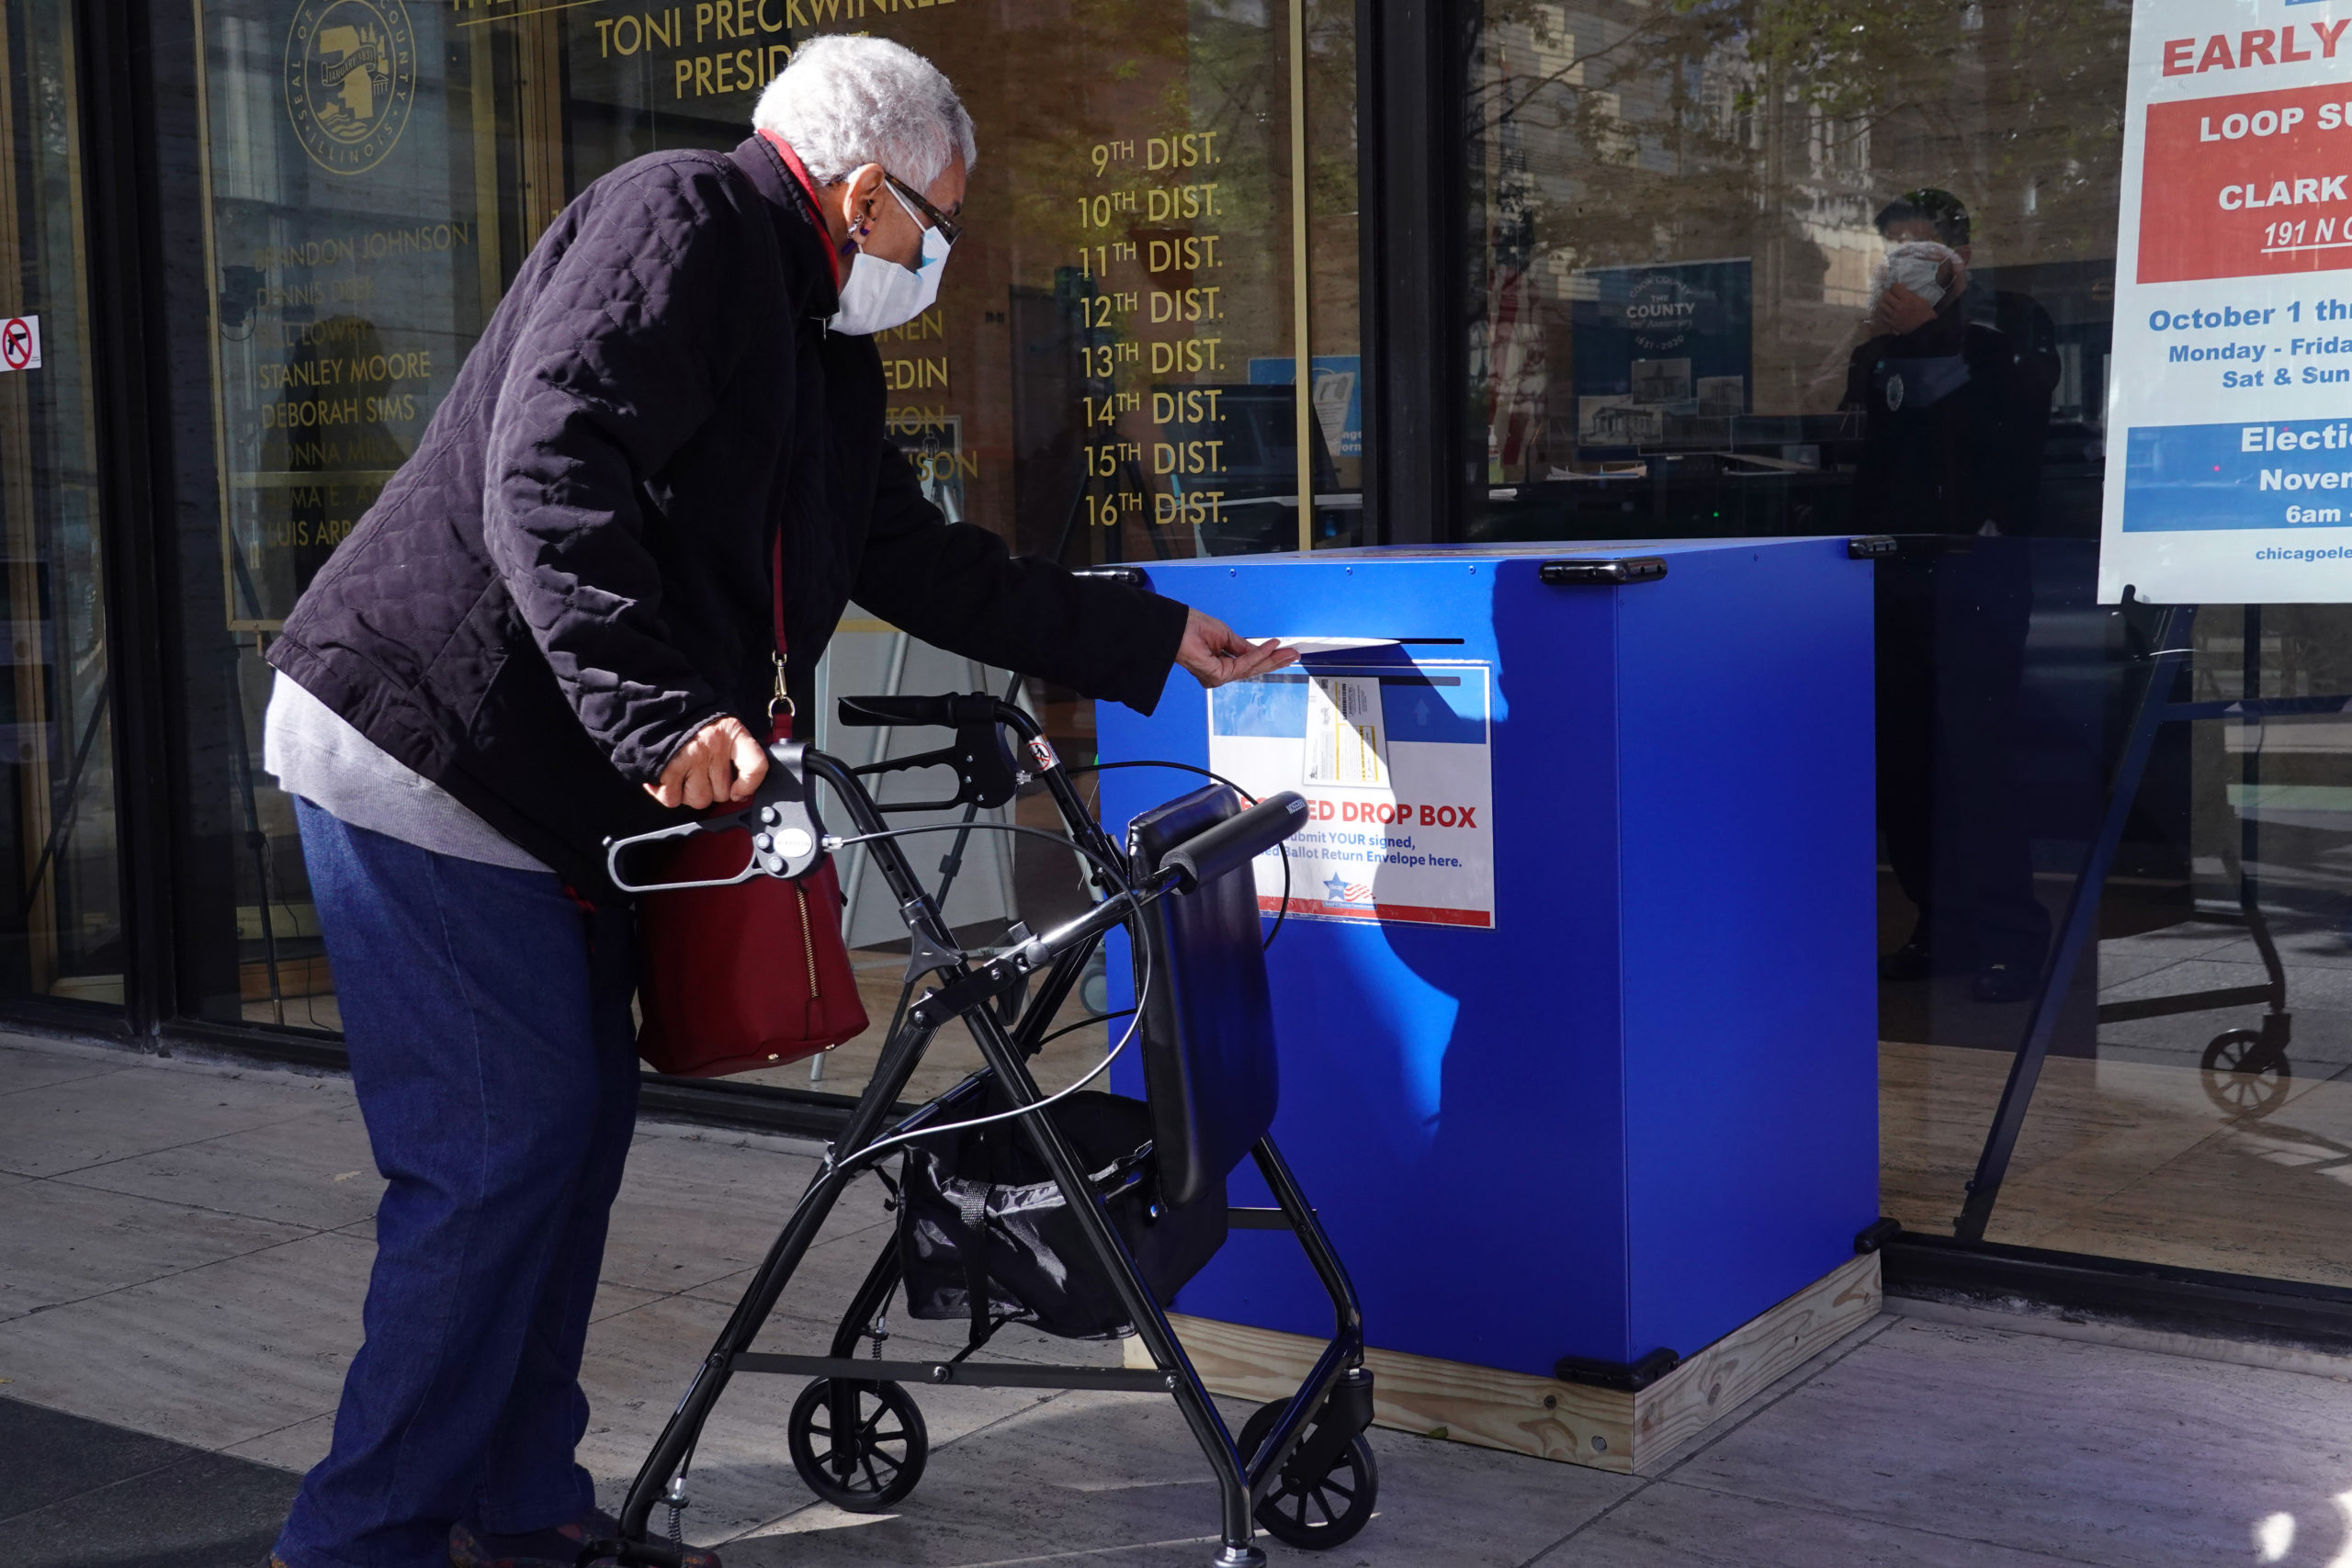 A resident drops off a mail ballot in a secure drop box on Oct. 02 in Chicago, Illinois. (Scott Olson/Getty Images)